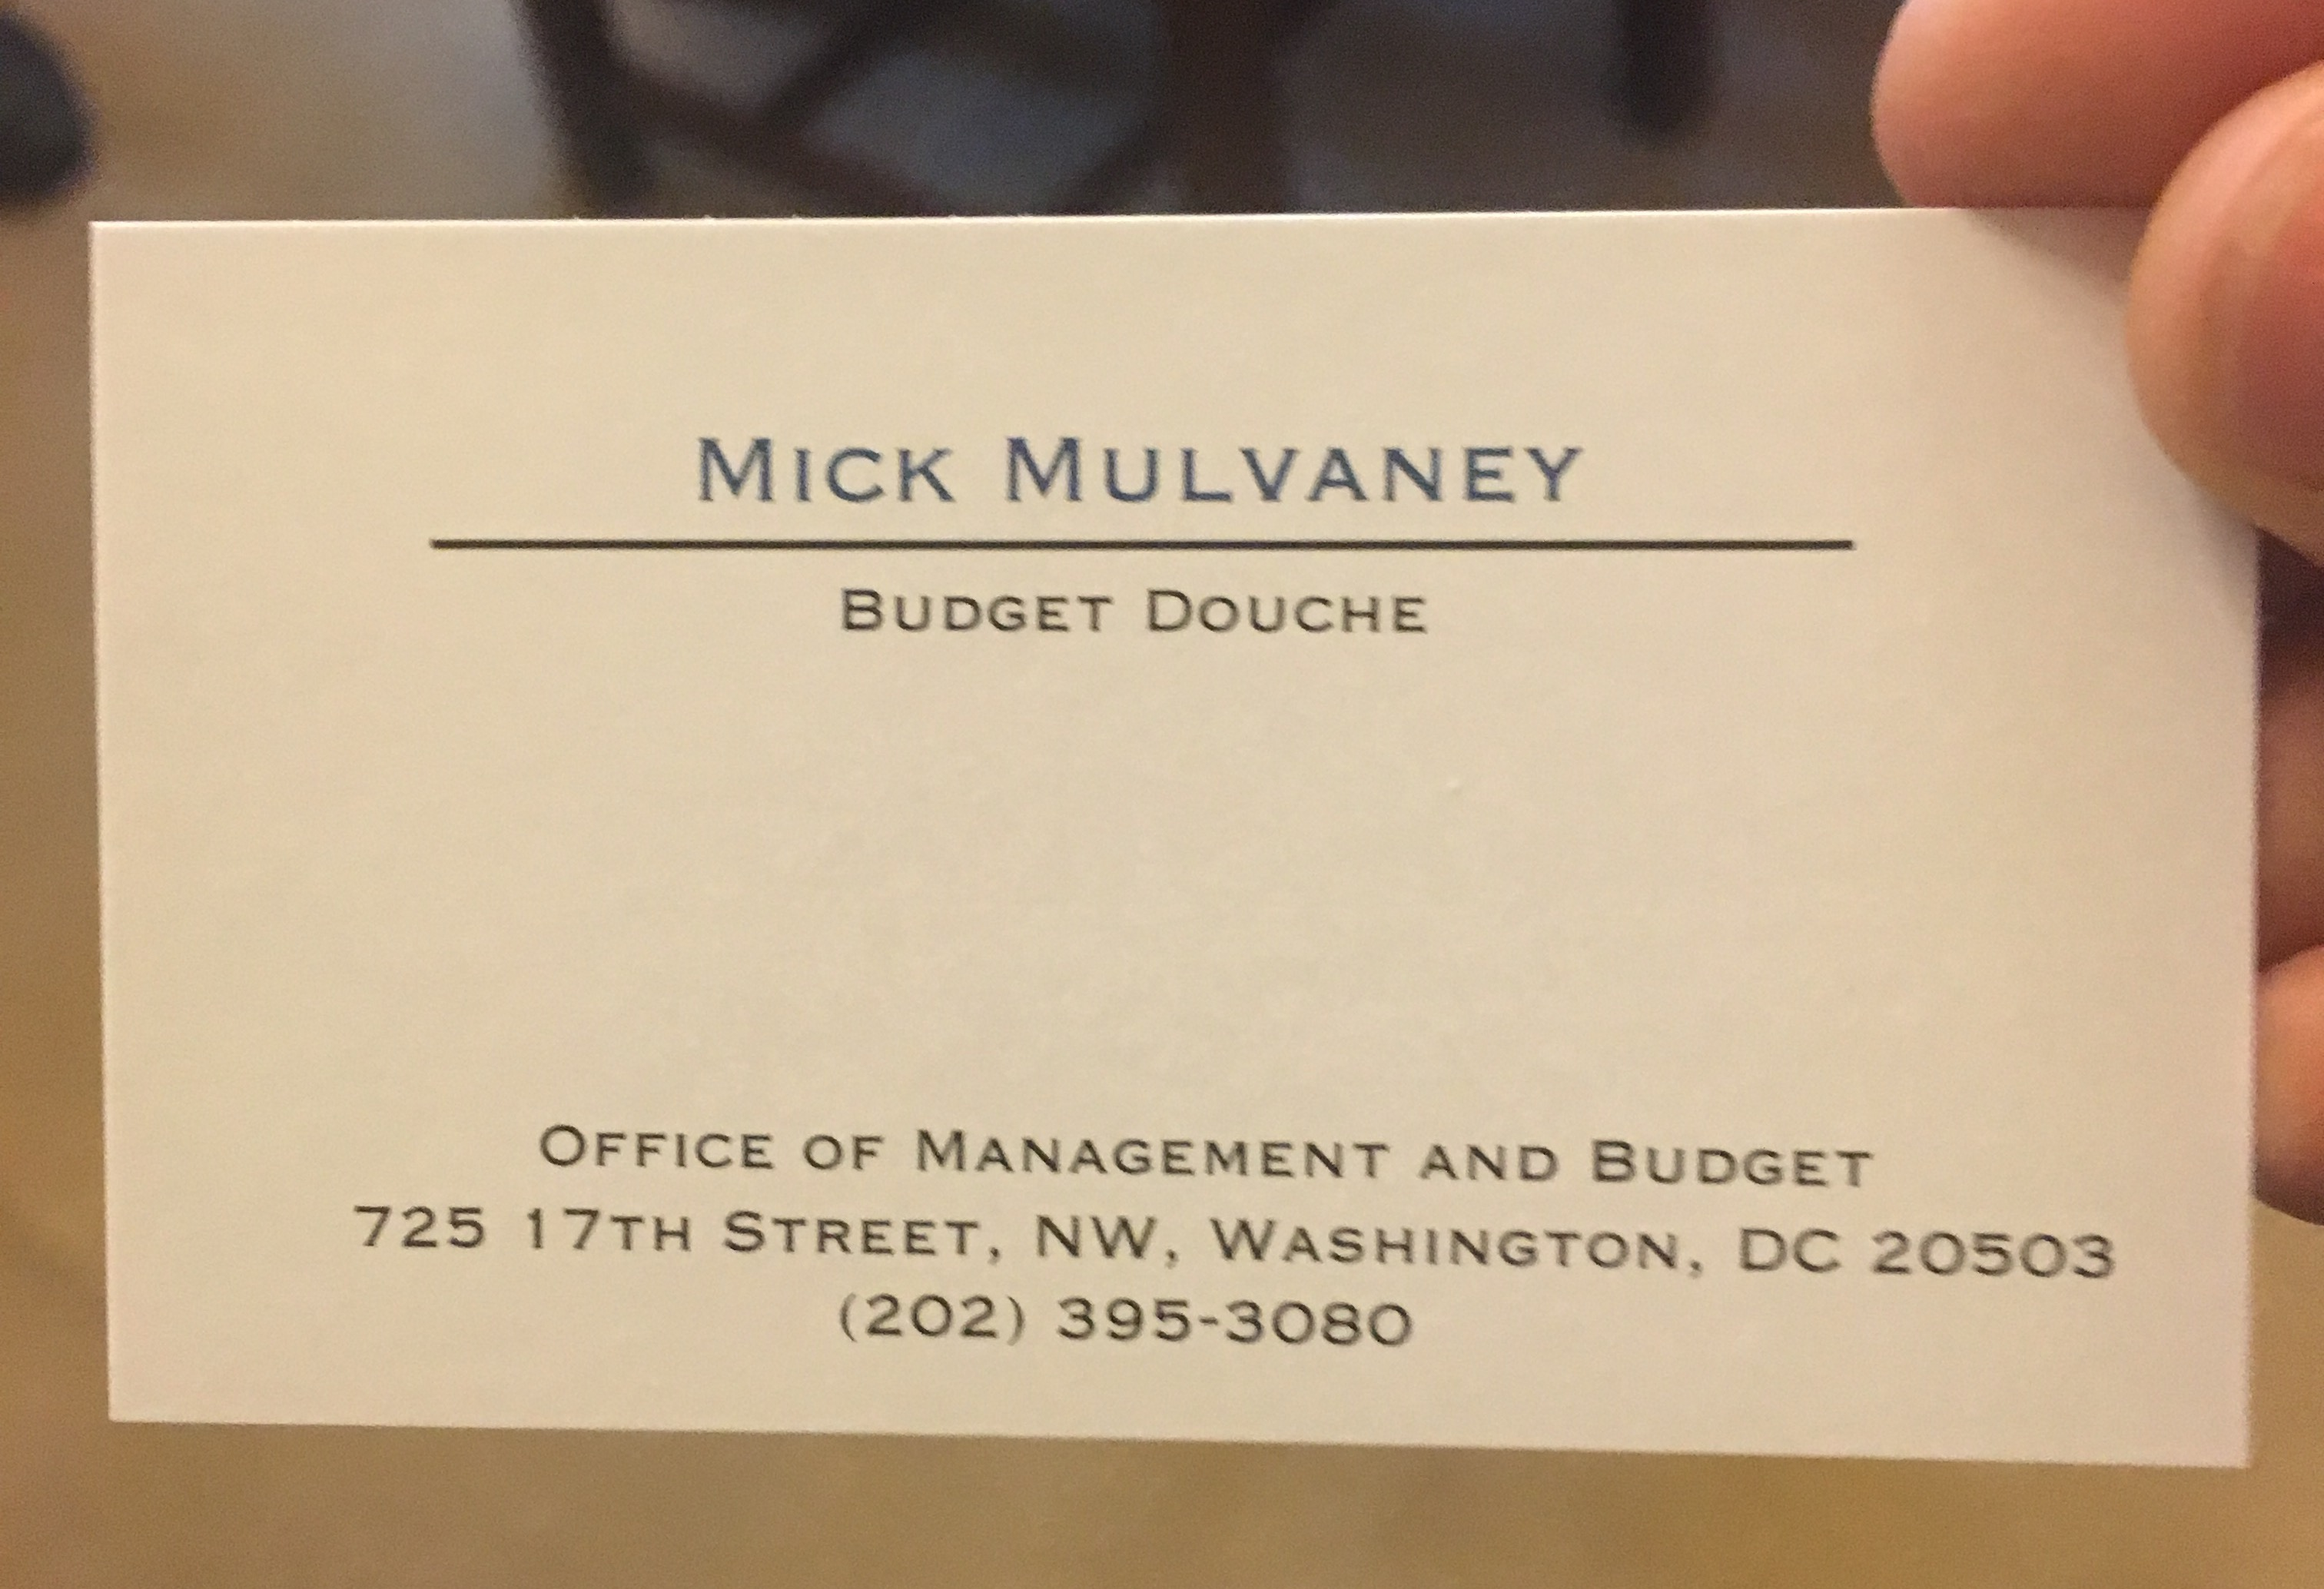 kind protesters provided mick mulvaney with bud douche